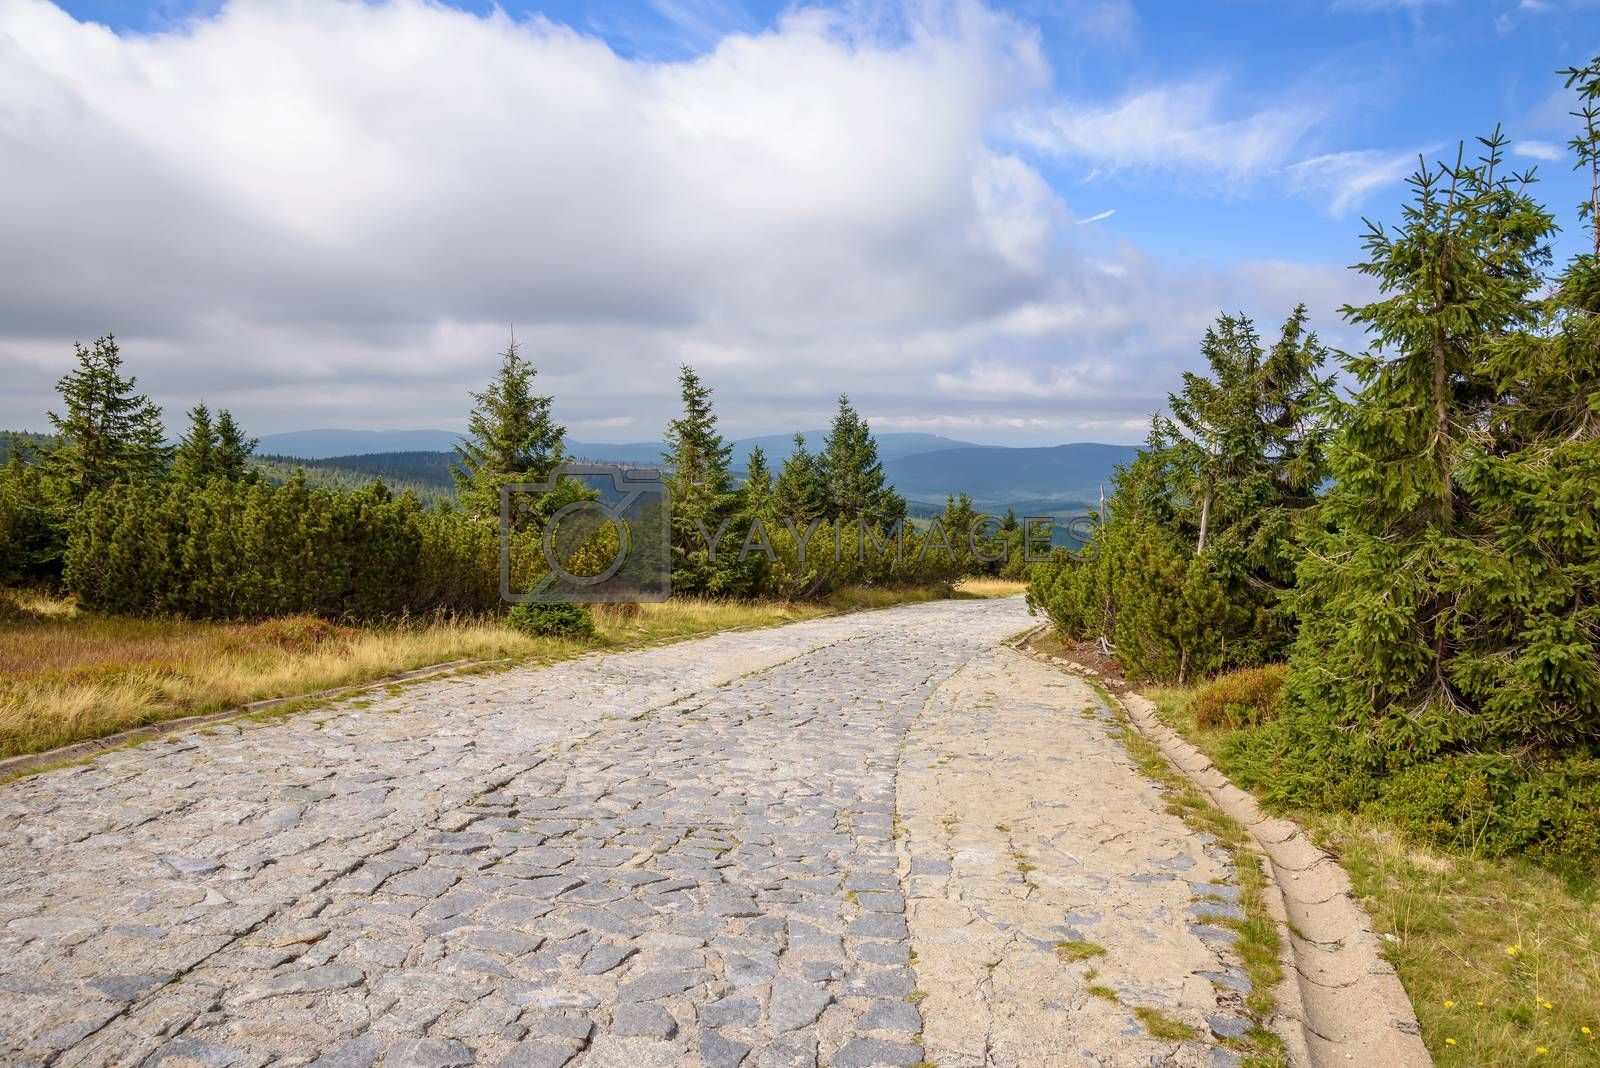 Main mountain trail in Giant Mountains on the border between Poland and Czech Republic